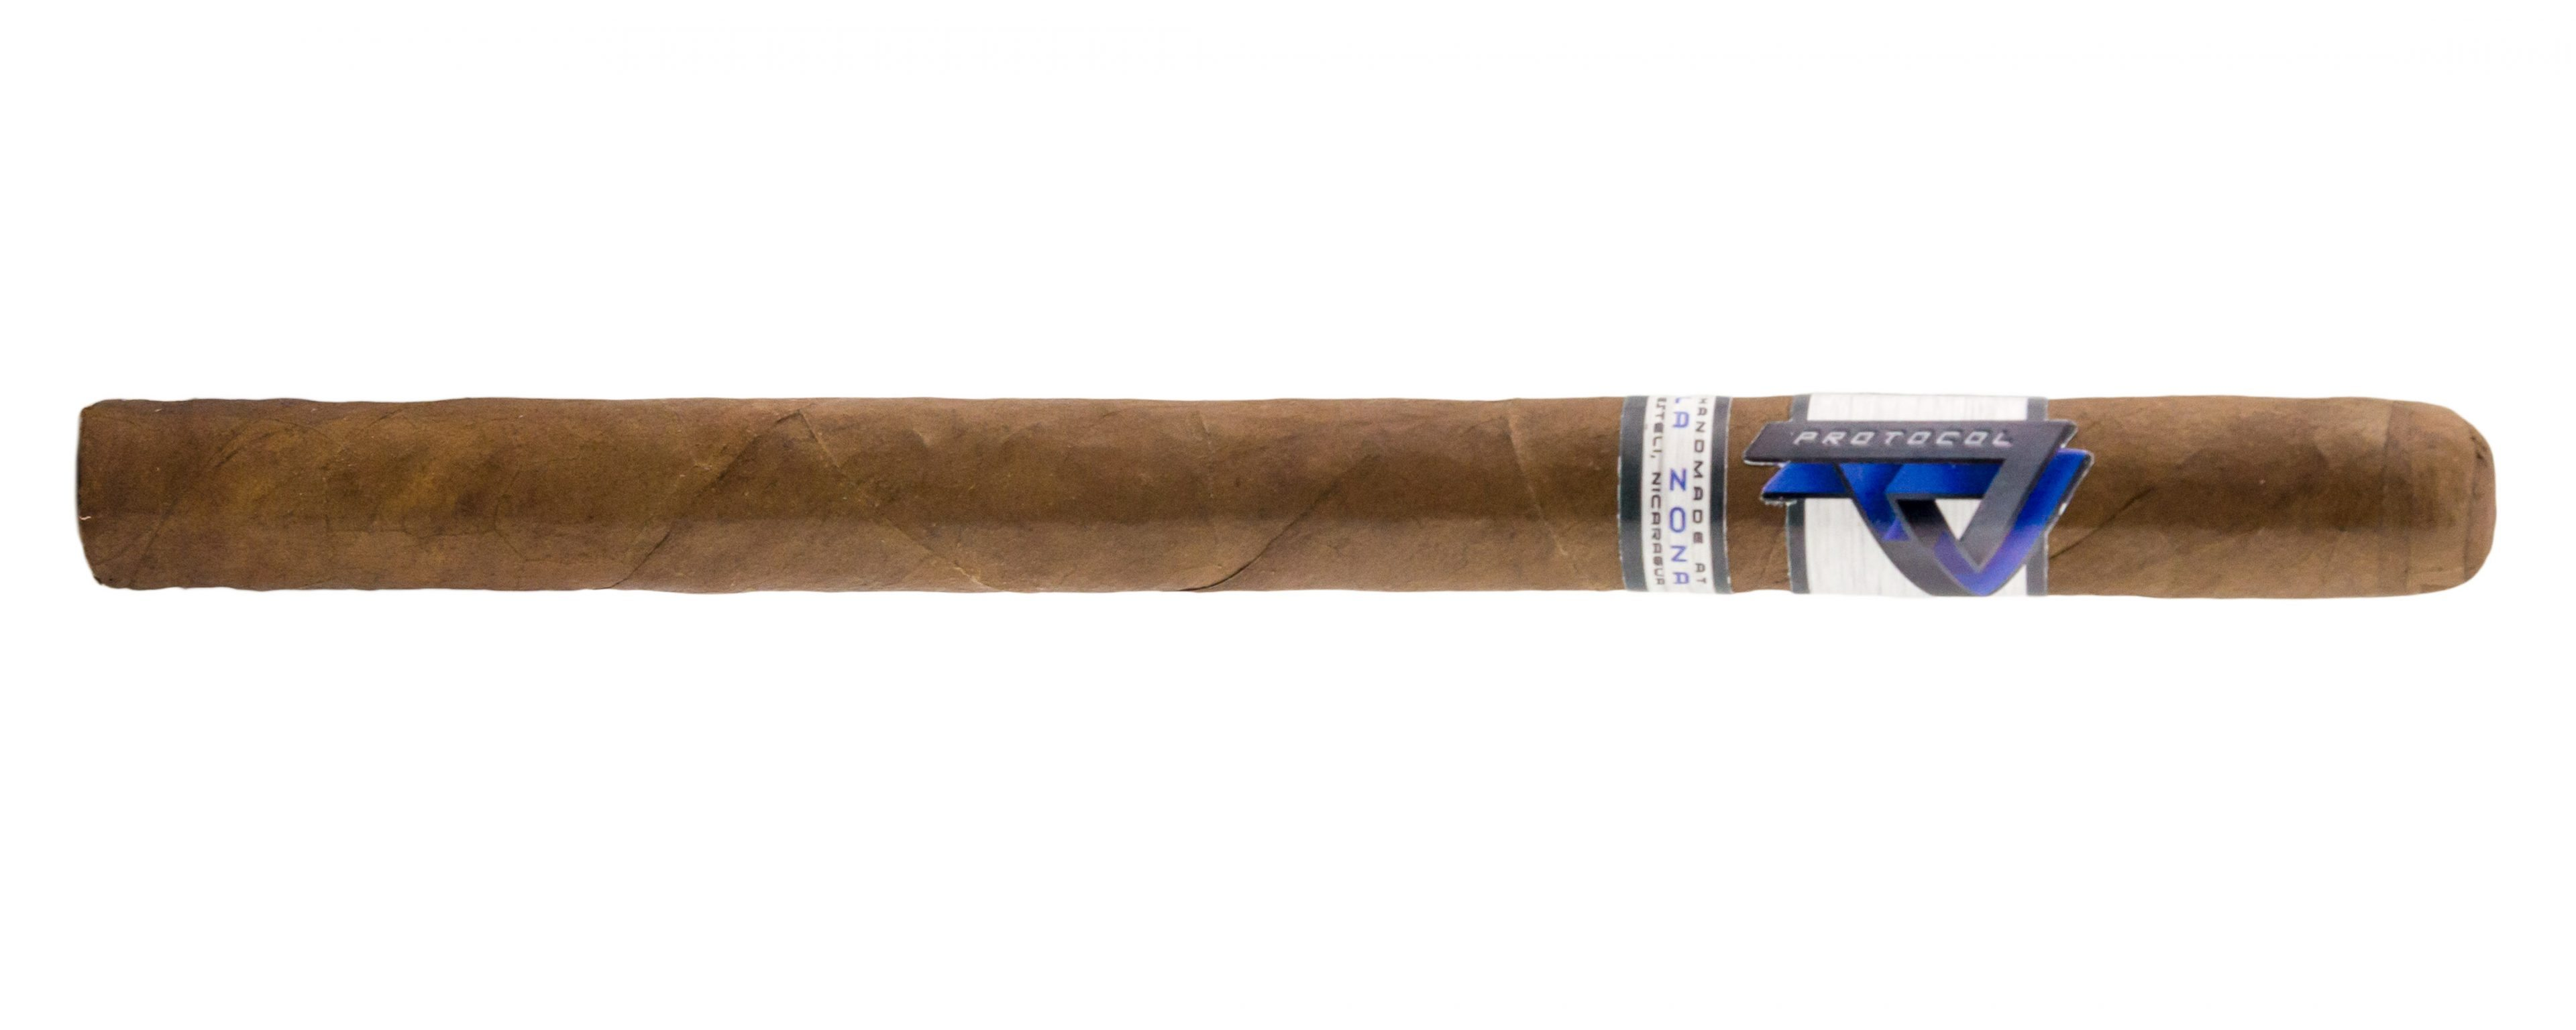 Blind Cigar Review: Cubariqueño | Protocol Lancero